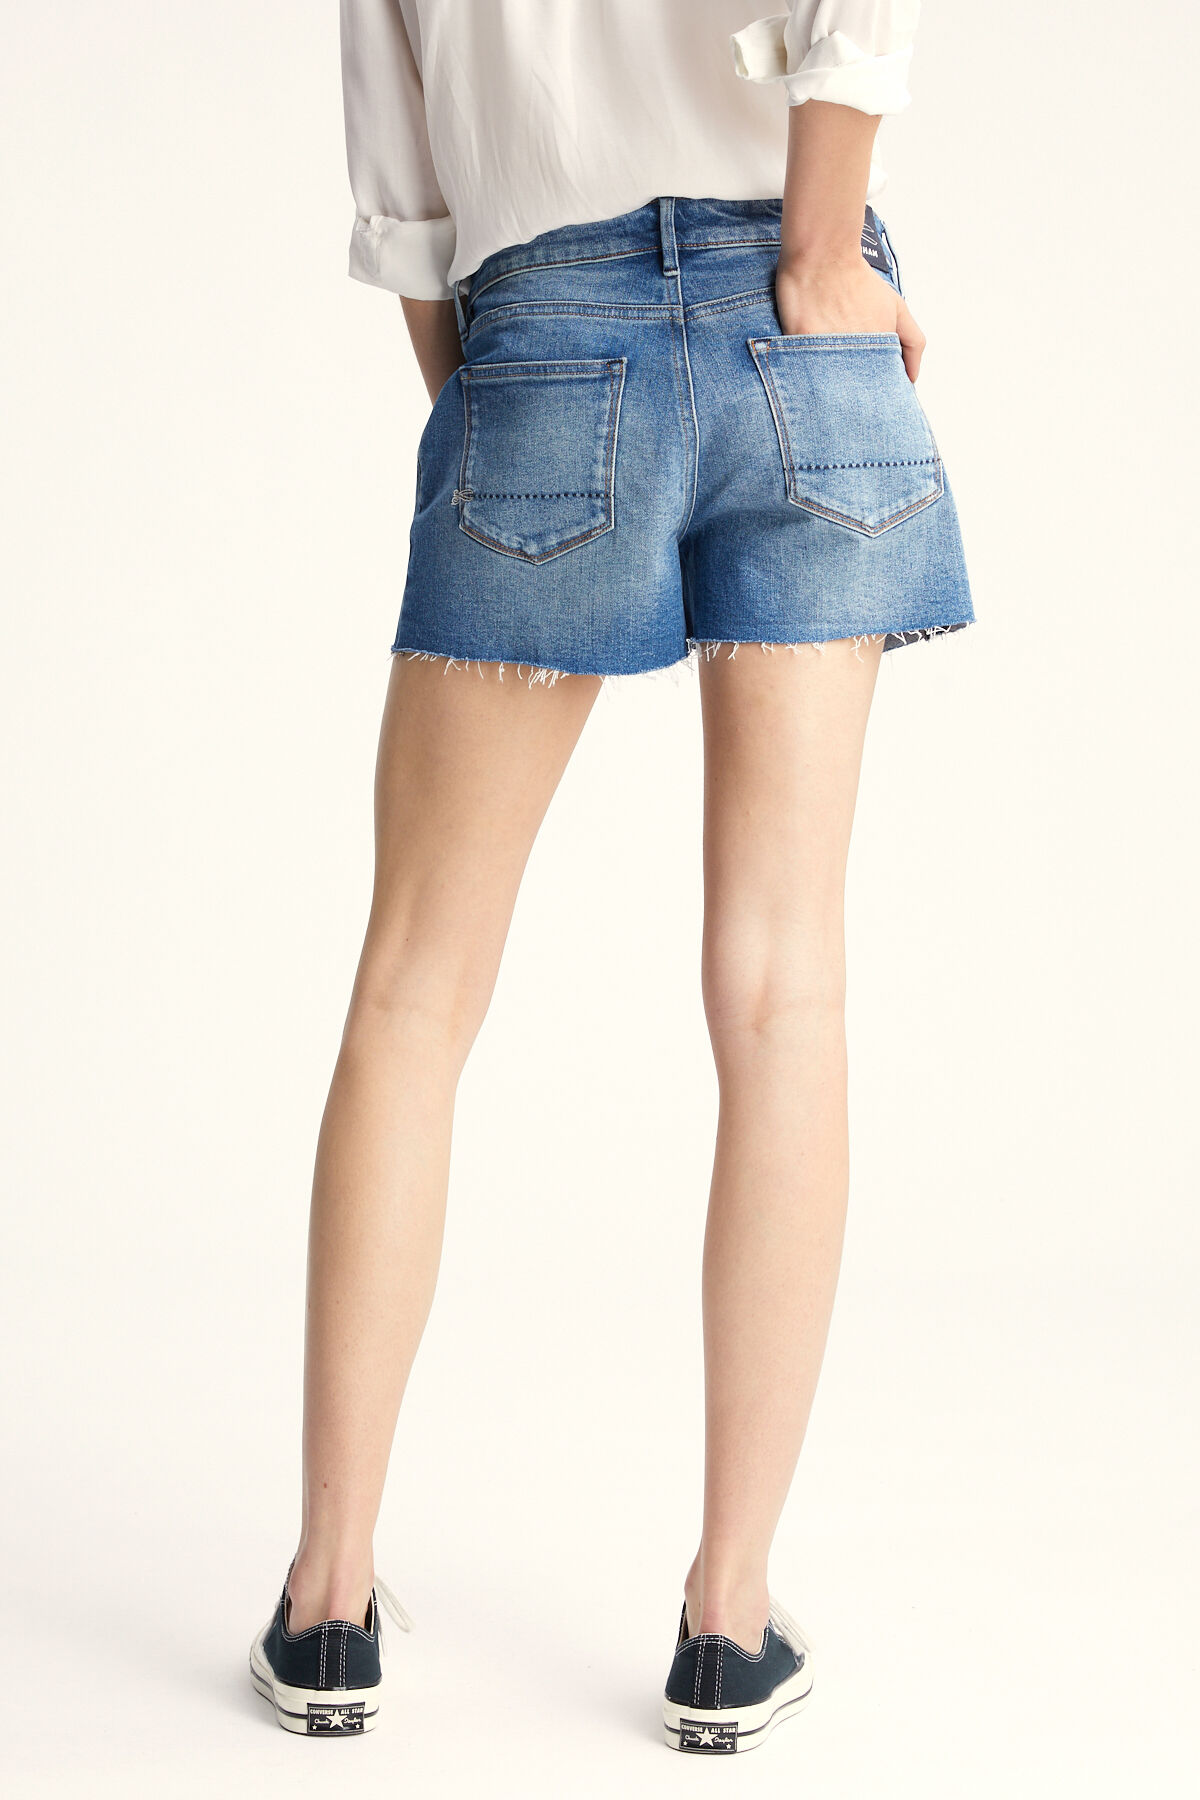 MONROE SHORT Blue Authentic Denim - Regular Fit